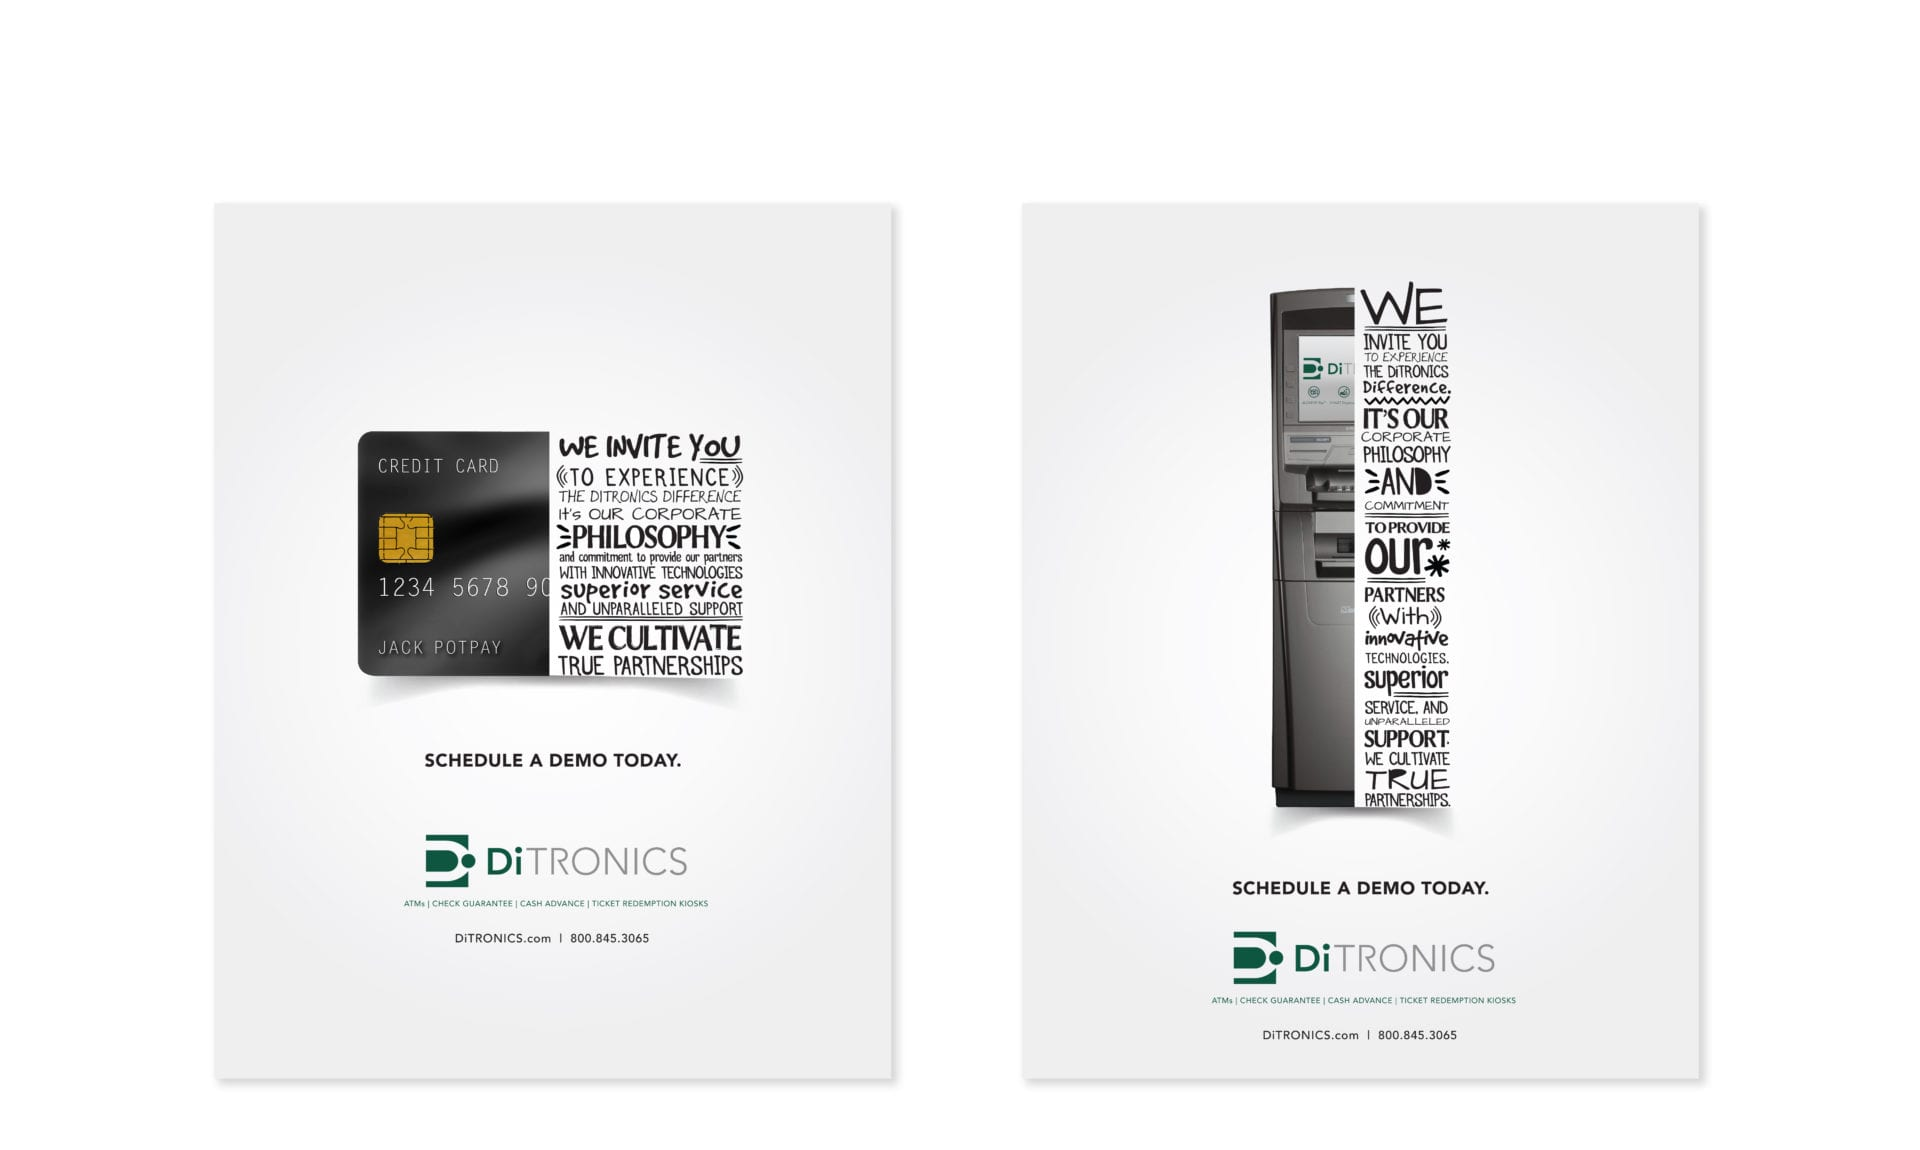 2 pages of examples of the DiTronic Print Ad campaign